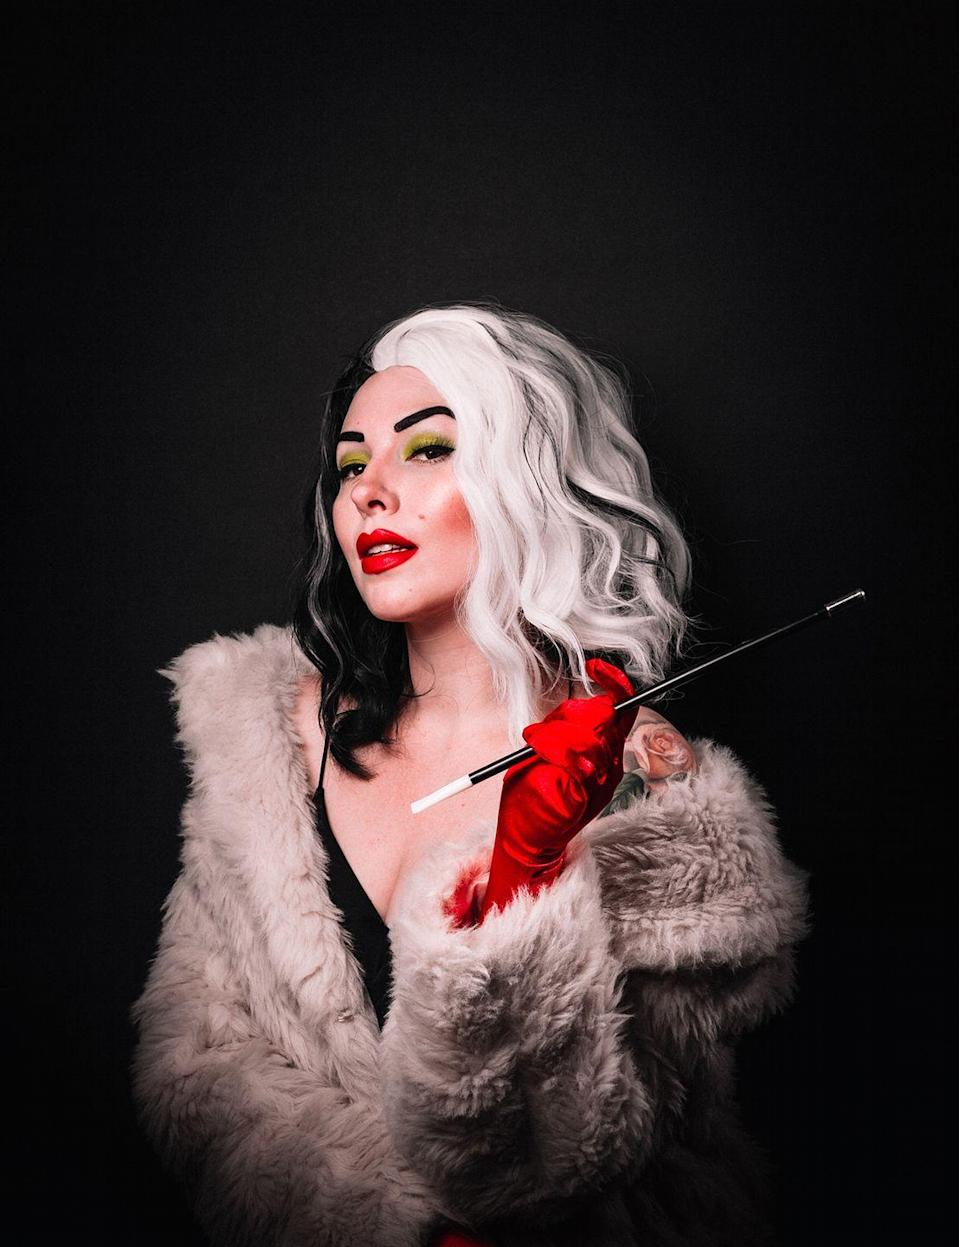 """<p>With the new movie dedicated to her out this year, Halloween 2021 is the perfect time to honor cold-hearted Cruella with a costume. It's easy to pull off with a few props, like the half-white, half-black wig and a cigarette holder.</p><p><strong>Get the tutorial at <a href=""""https://keikolynn.com/2019/10/disney-villains-halloween-costumes/"""" rel=""""nofollow noopener"""" target=""""_blank"""" data-ylk=""""slk:Keiko Lynn"""" class=""""link rapid-noclick-resp"""">Keiko Lynn</a>.</strong></p><p><a class=""""link rapid-noclick-resp"""" href=""""https://www.amazon.com/dp/B01AIWBUR6/ref=twister_B089NNRGY9?tag=syn-yahoo-20&ascsubtag=%5Bartid%7C10050.g.36674692%5Bsrc%7Cyahoo-us"""" rel=""""nofollow noopener"""" target=""""_blank"""" data-ylk=""""slk:SHOP CIGARETTE HOLDERS"""">SHOP CIGARETTE HOLDERS</a><br></p>"""